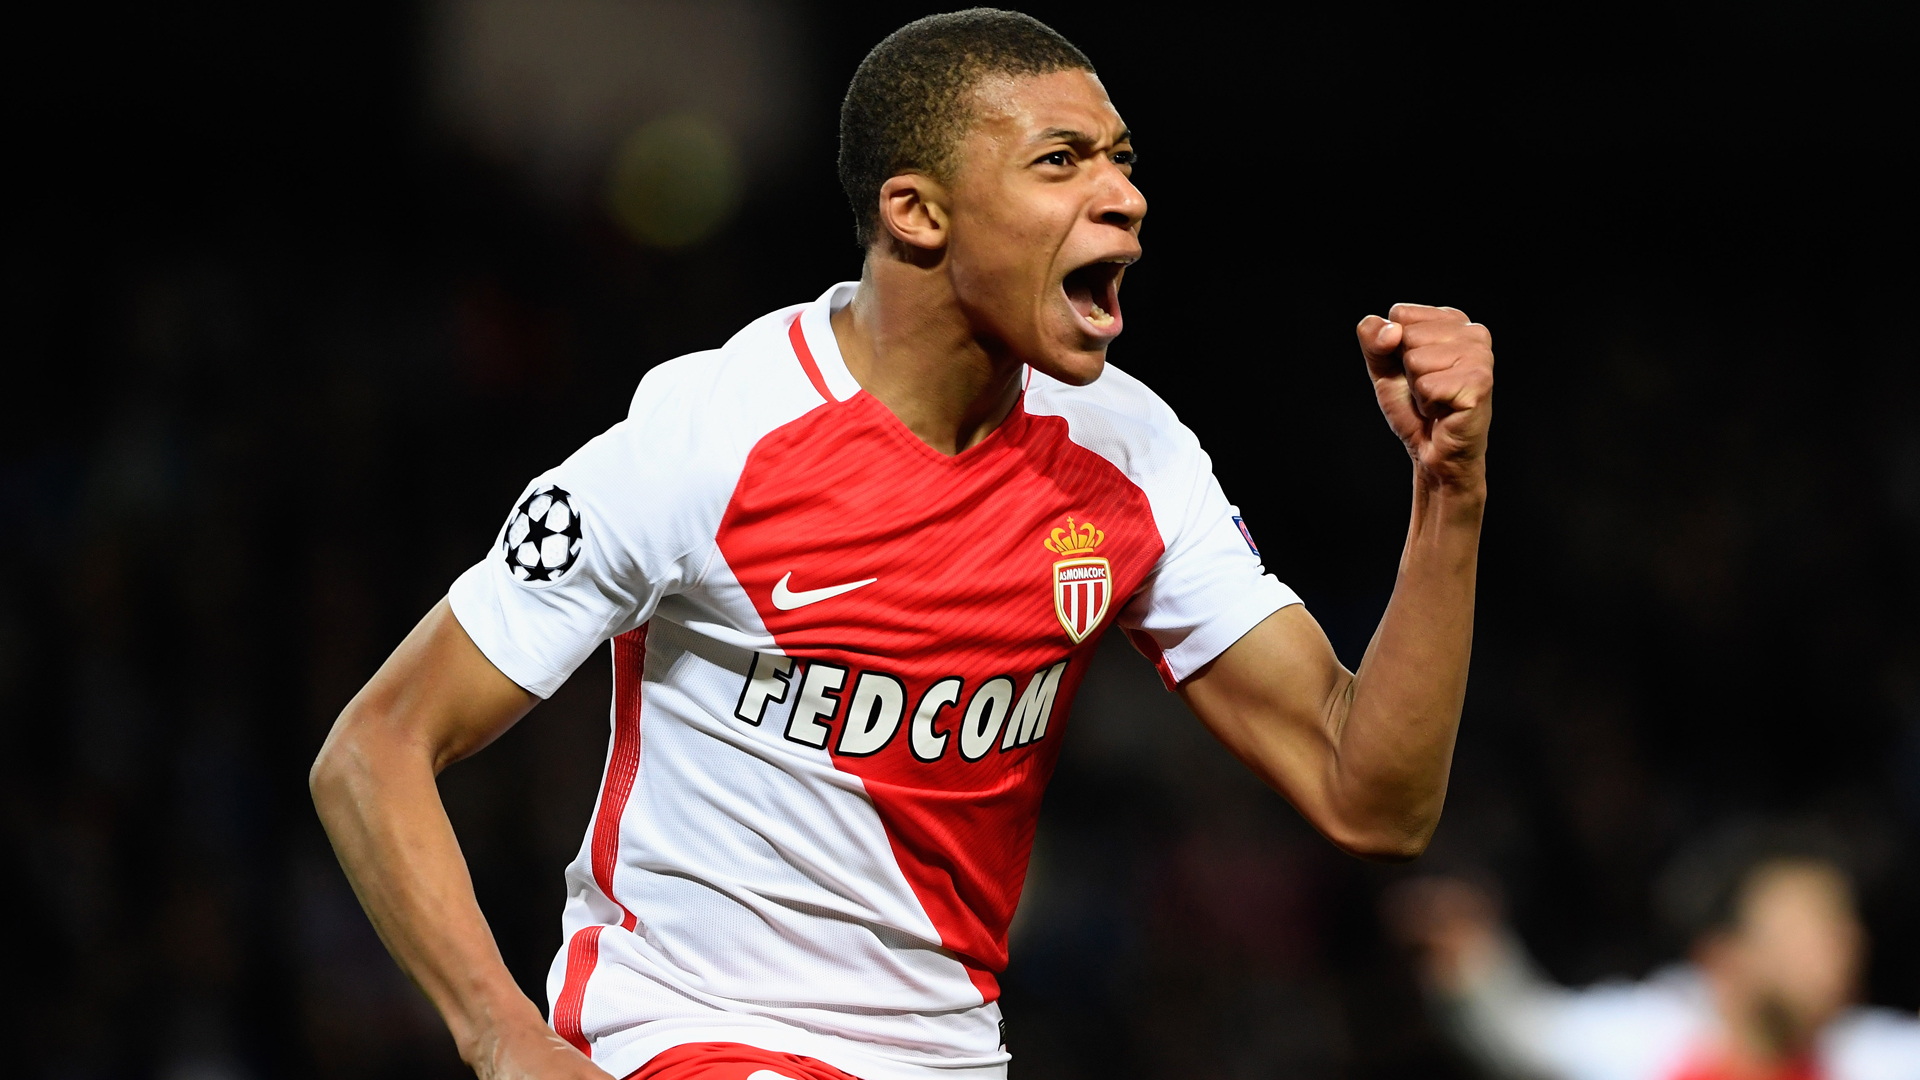 Kylian Mbappe should take heed of Anthony Martial struggles - Trezeguet